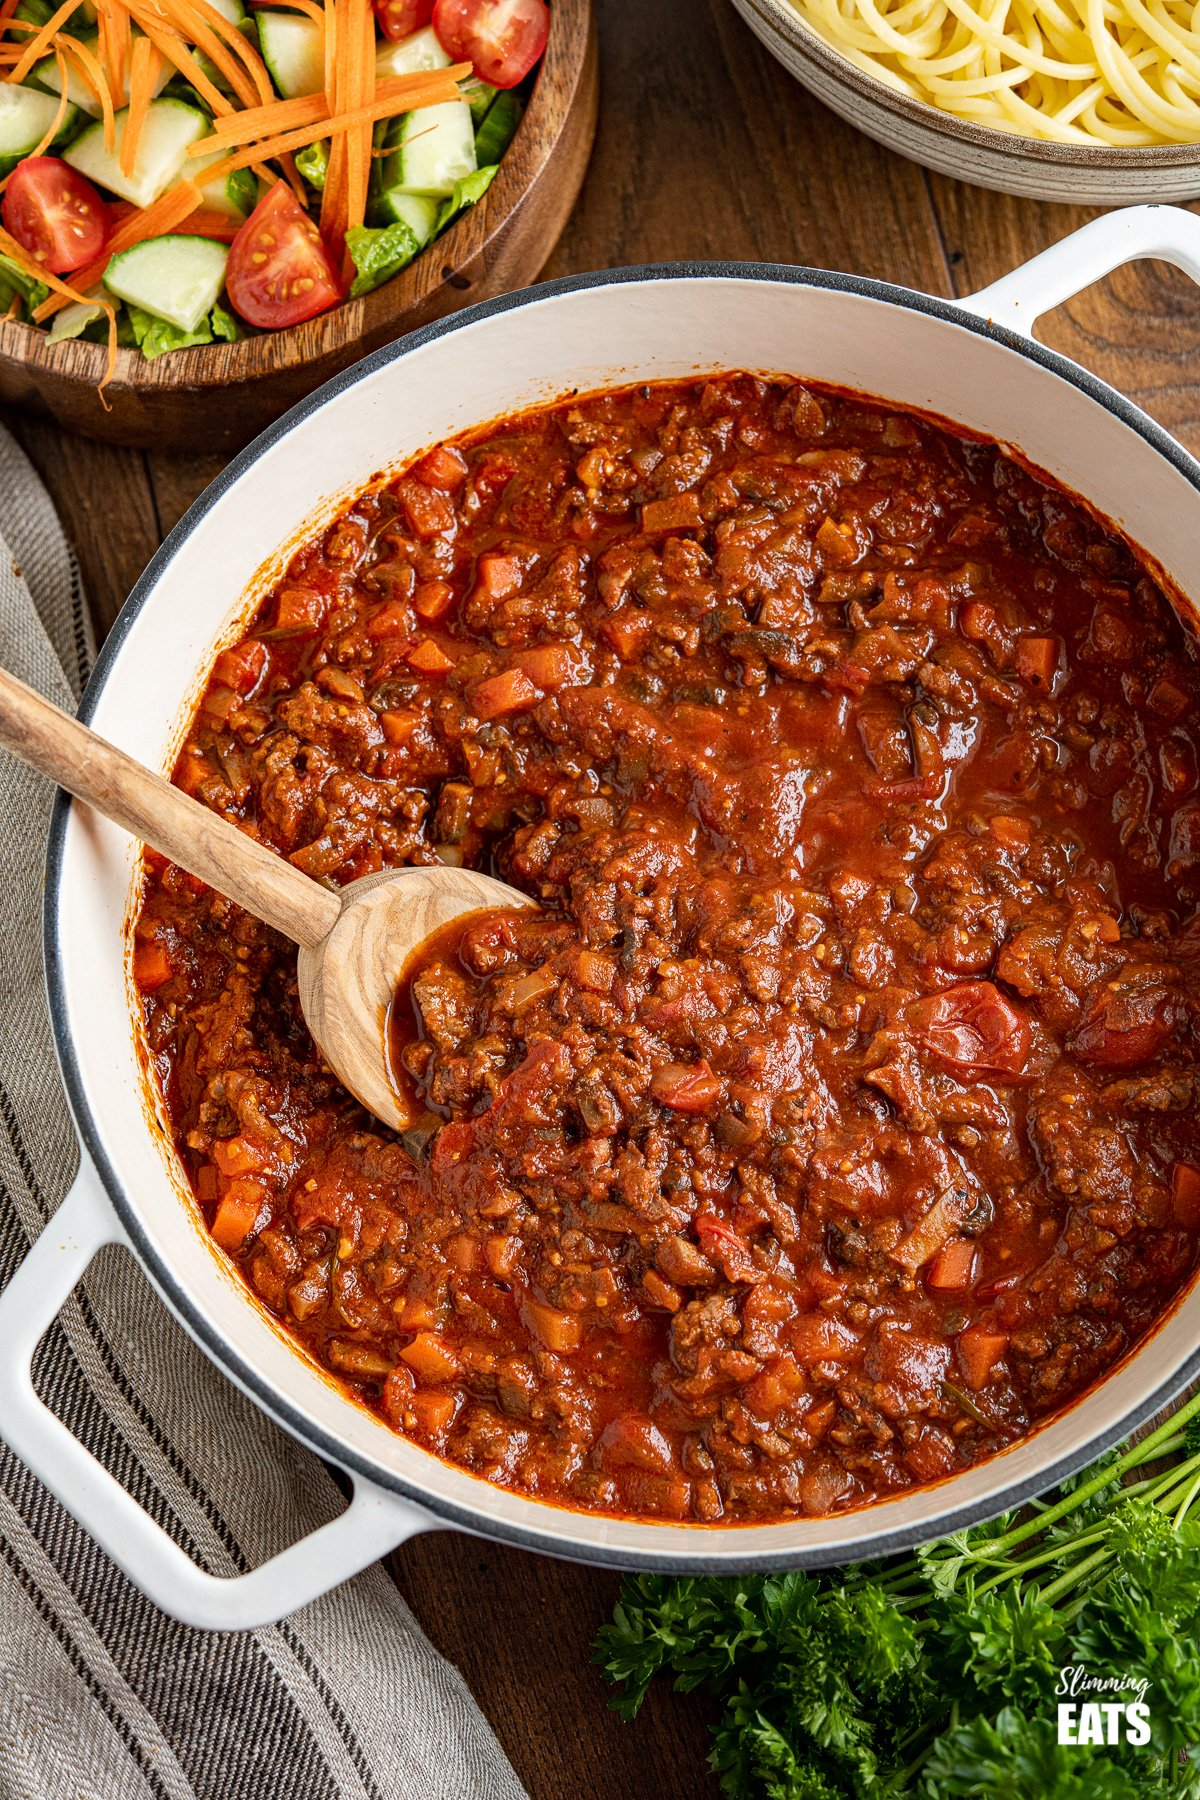 Bolognese meat sauce in white cast iron casserole pan with wooden bowl of salad and bowl of spaghetti in background